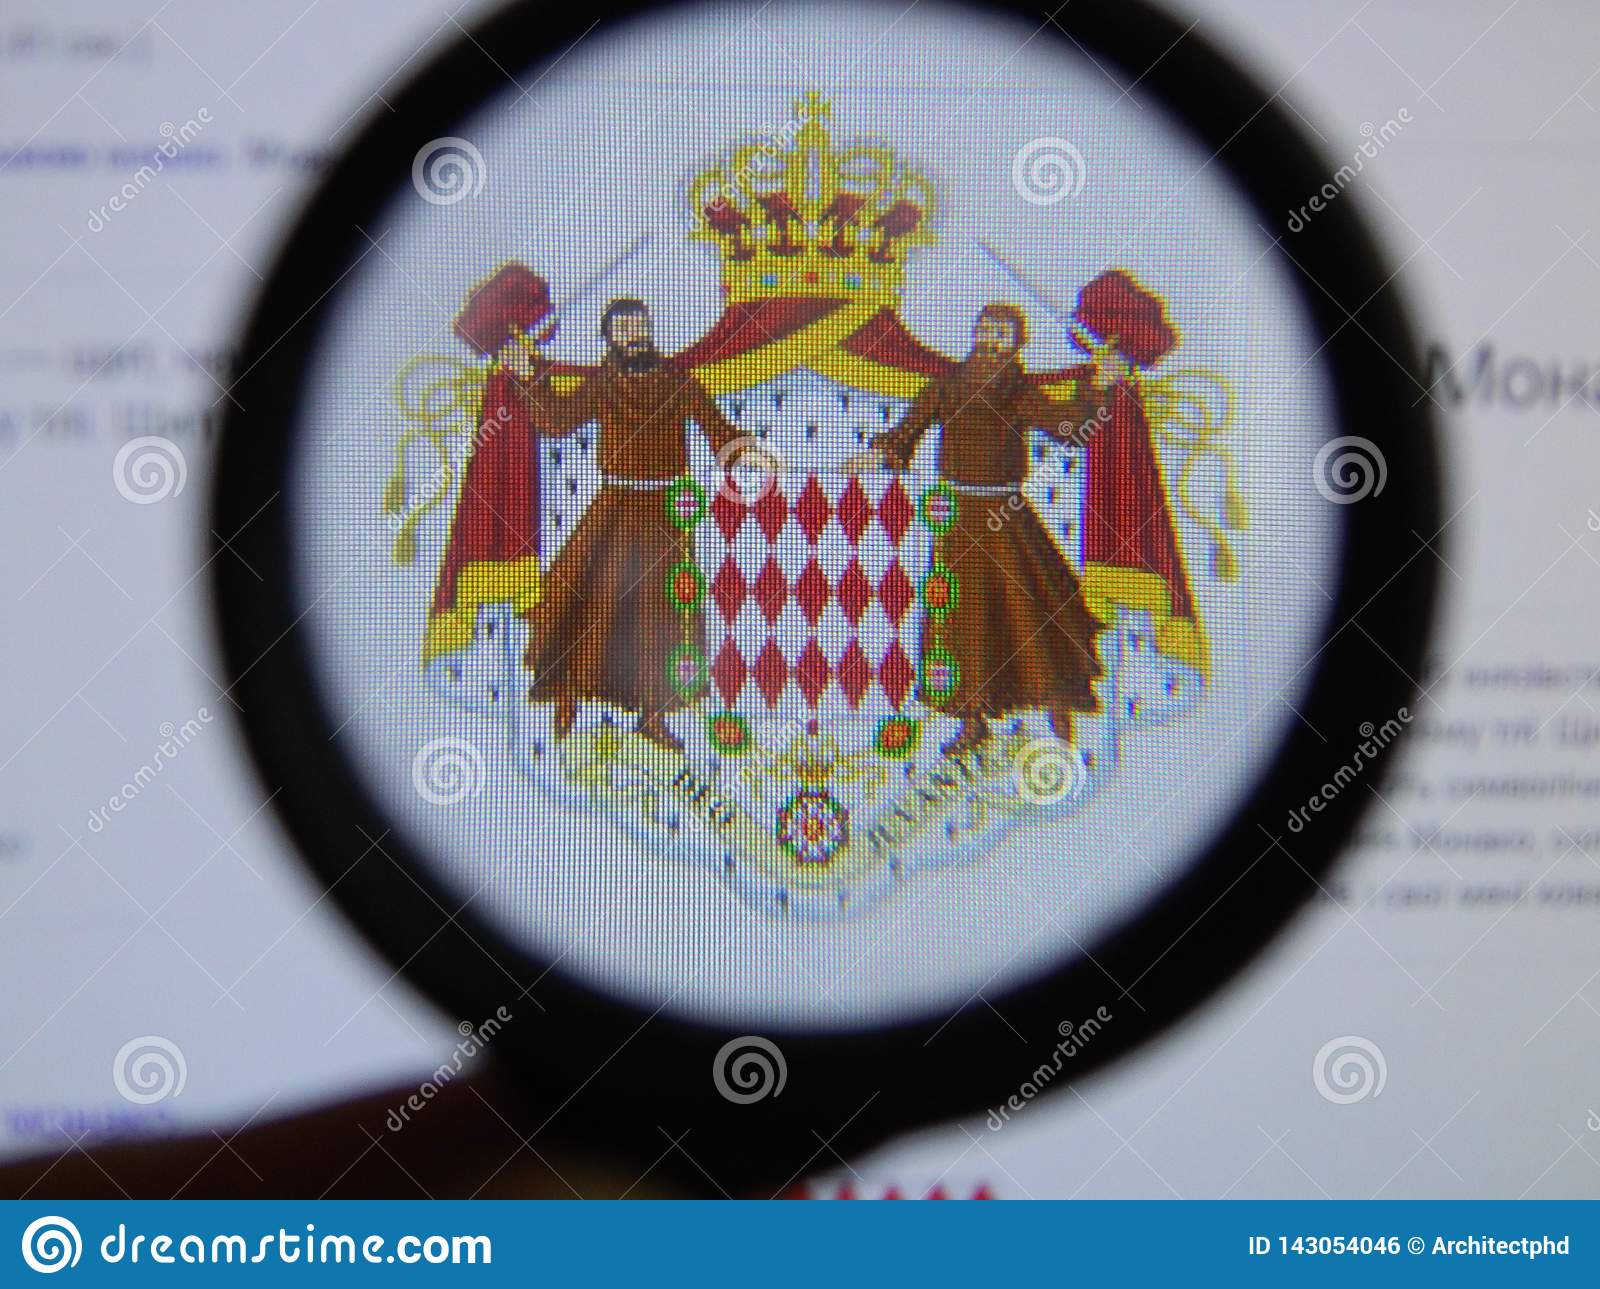 KIEV, UKRAINE - MARCH 23, 2019: Monaco coat of arms viewed through a magnifying glass